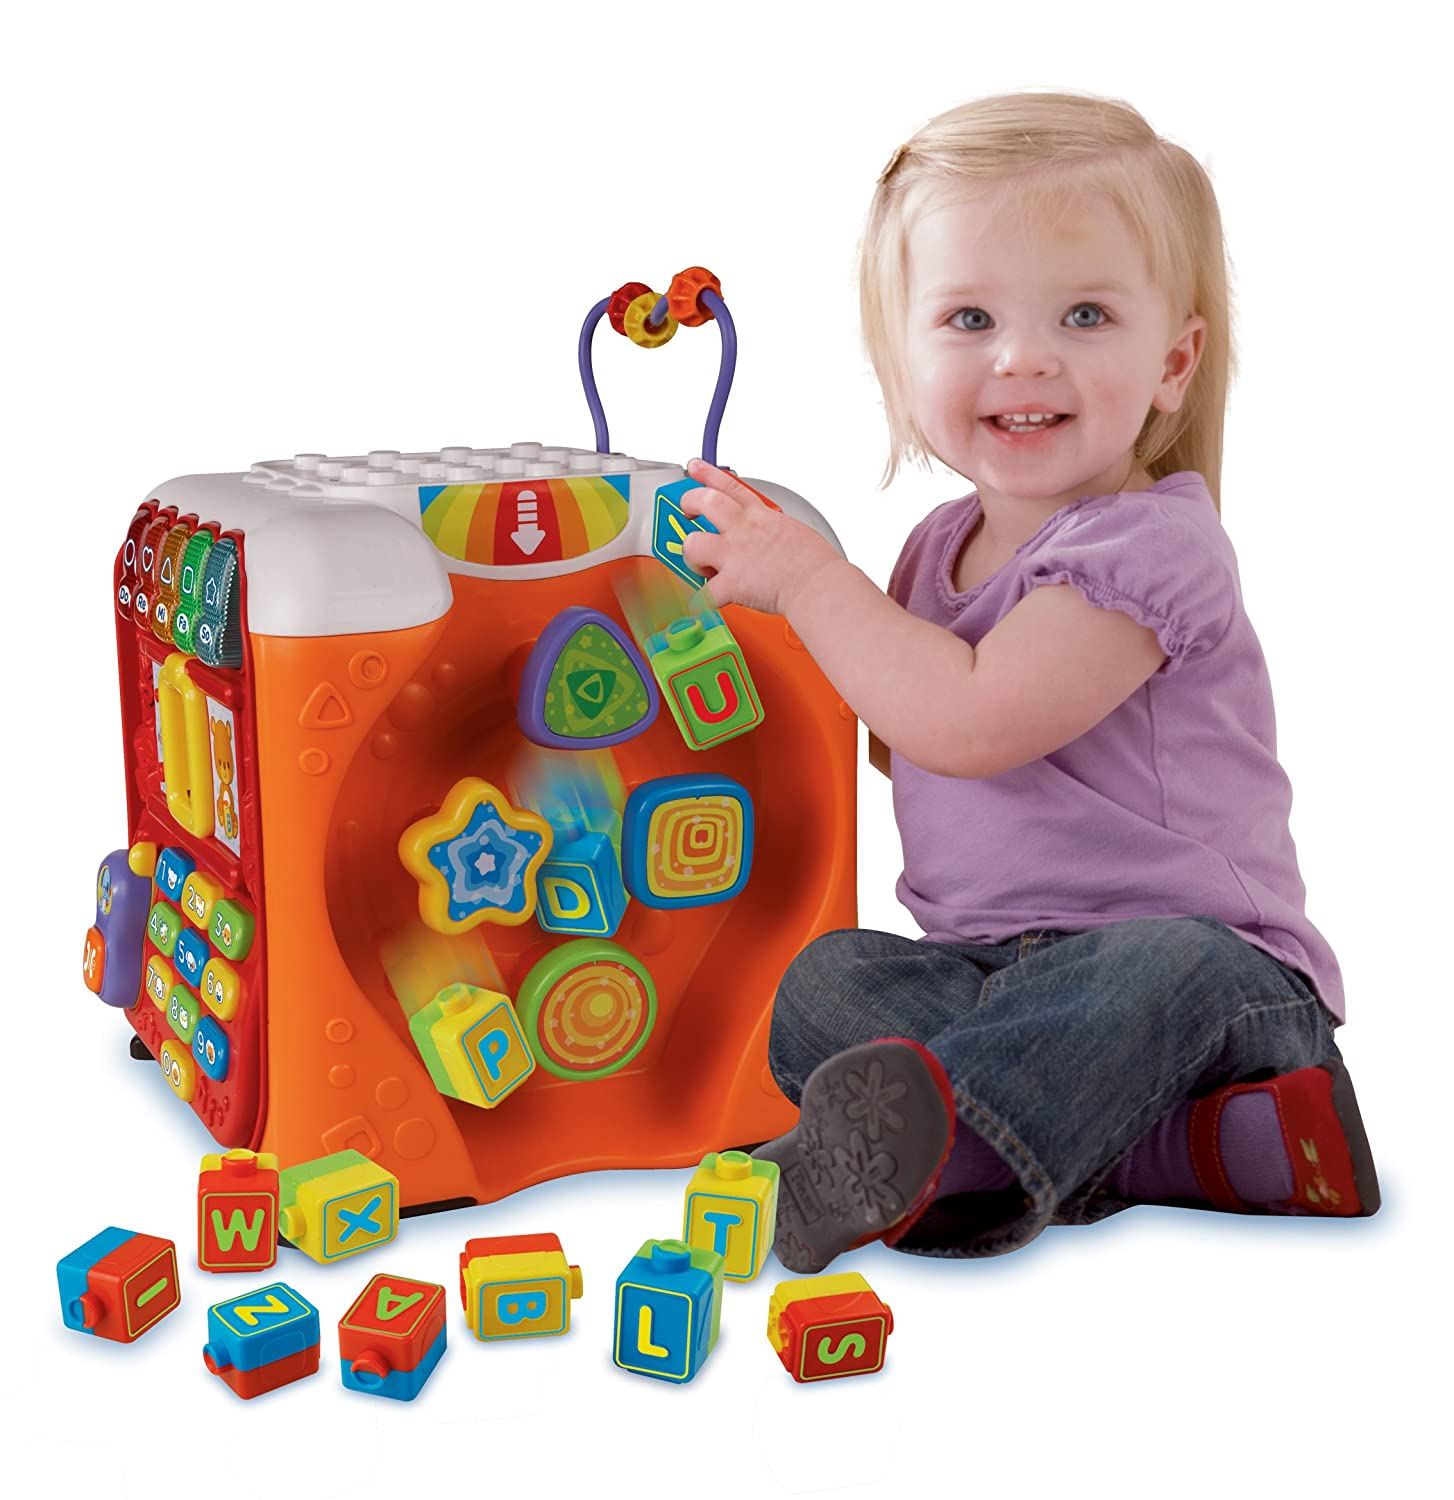 VTech Alphabet Activity Cube Électronique éducative Amazon Canada